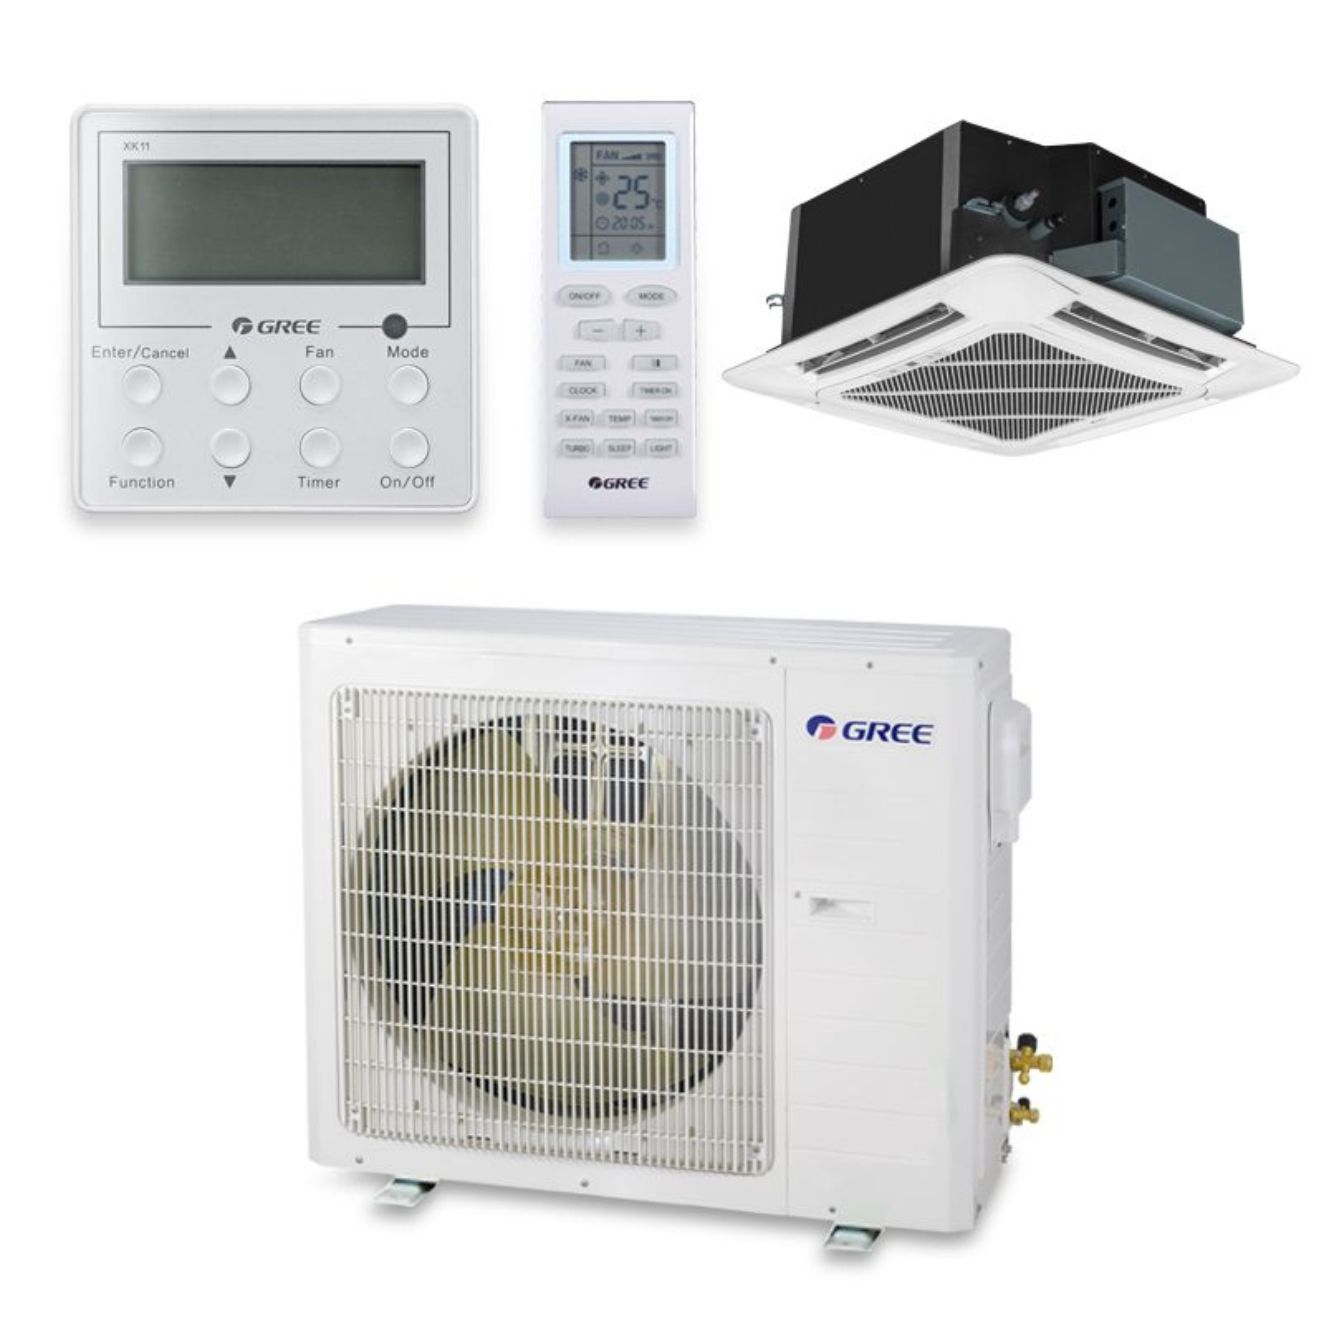 Gree UMAT30HP230V1AC-S - 30,000 BTU 16 SEER Ceiling Cassette Ductless Mini Split Air Conditioner Heat Pump 208-230V